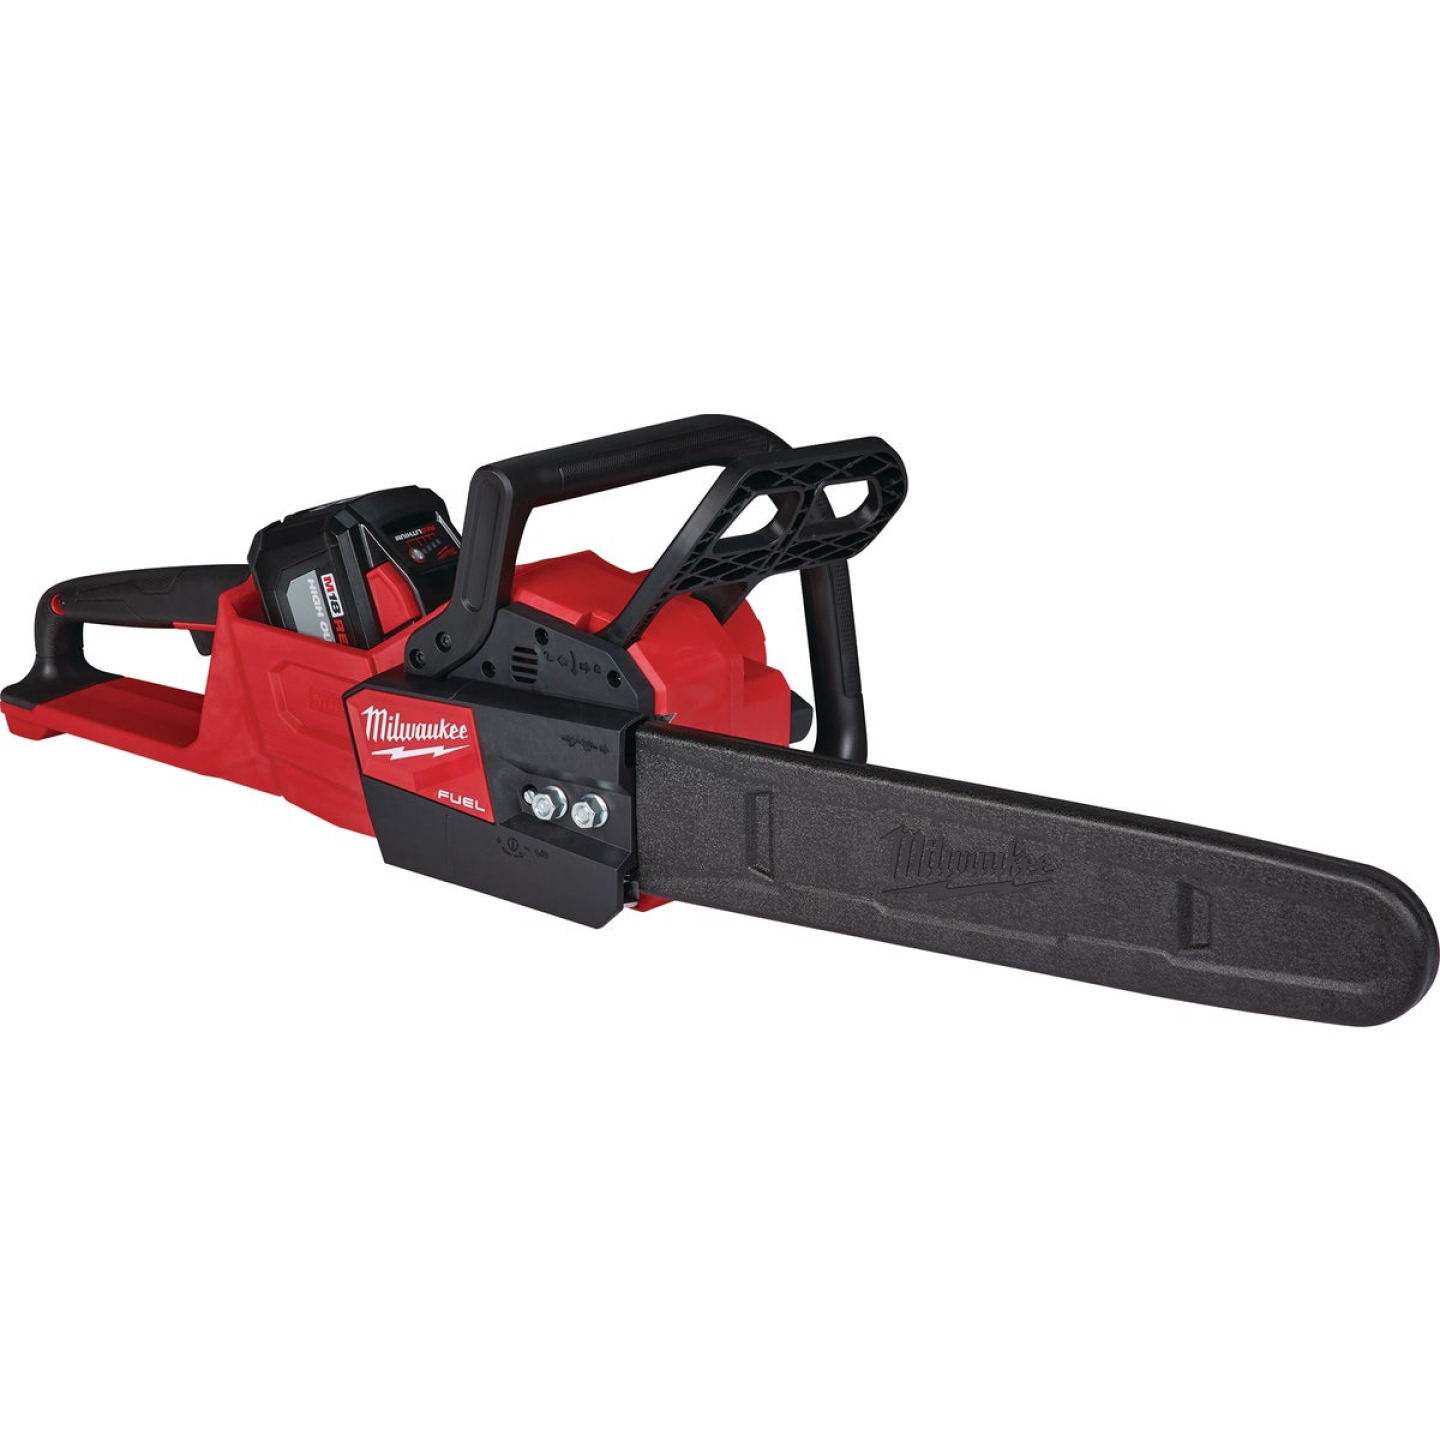 Milwaukee M18 FUEL 16 In. 18V Lithium Ion Cordless Chainsaw Kit Image 4